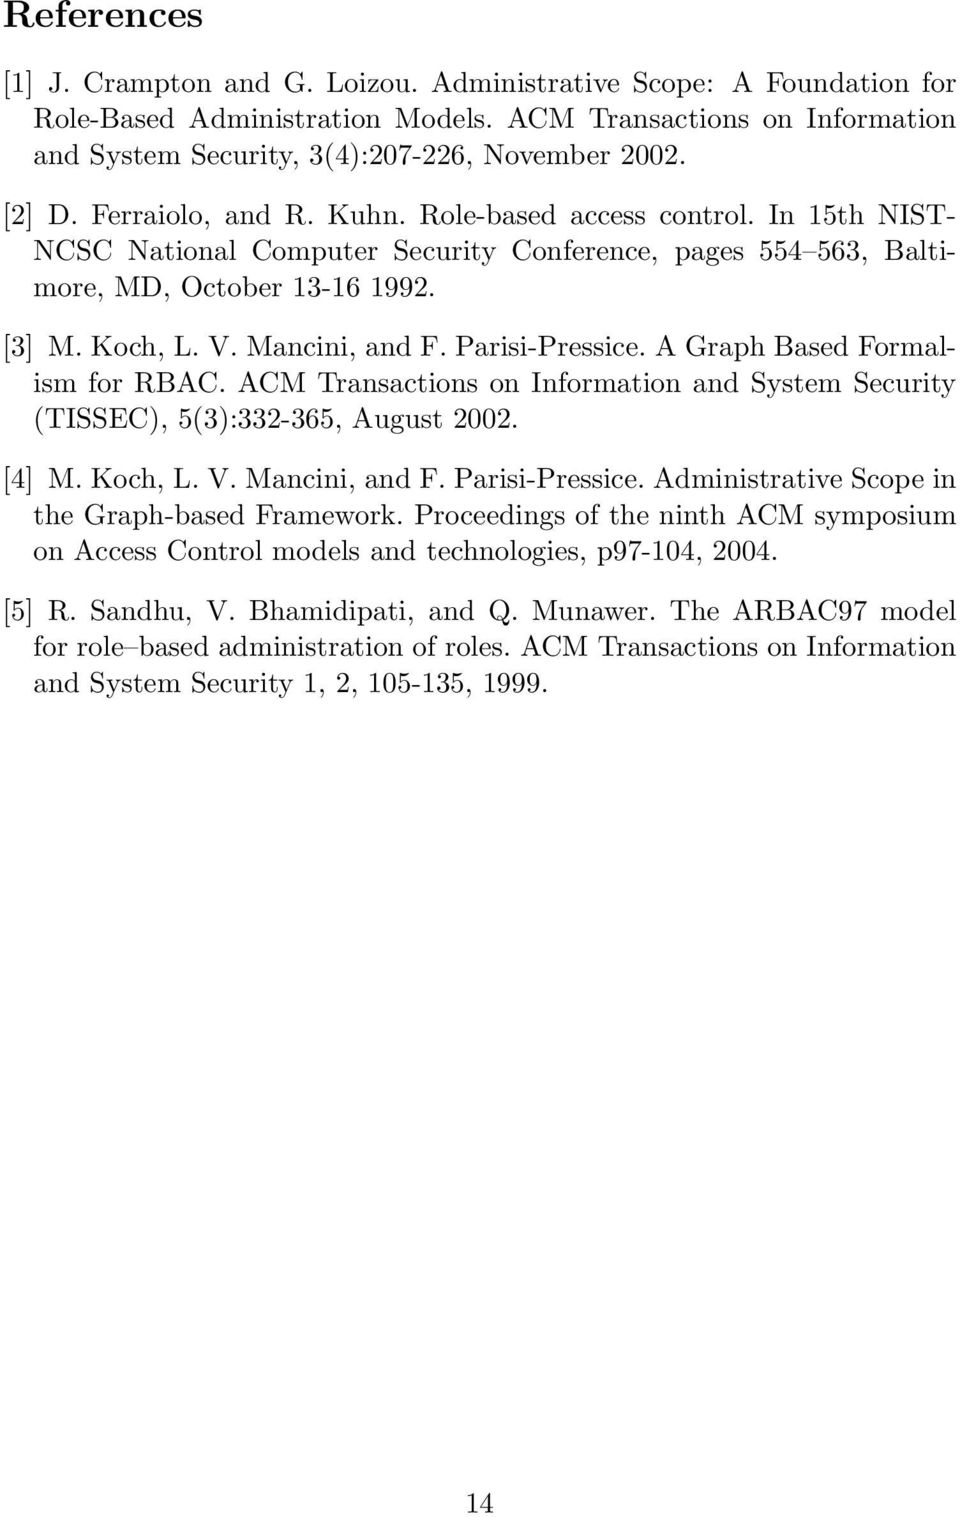 Parisi-Pressice. A Graph Based Formalism for RBAC. ACM Transactions on Information and System Security (TISSEC), 5(3):332-365, August 2002. [4] M. Koch, L. V. Mancini, and F. Parisi-Pressice.